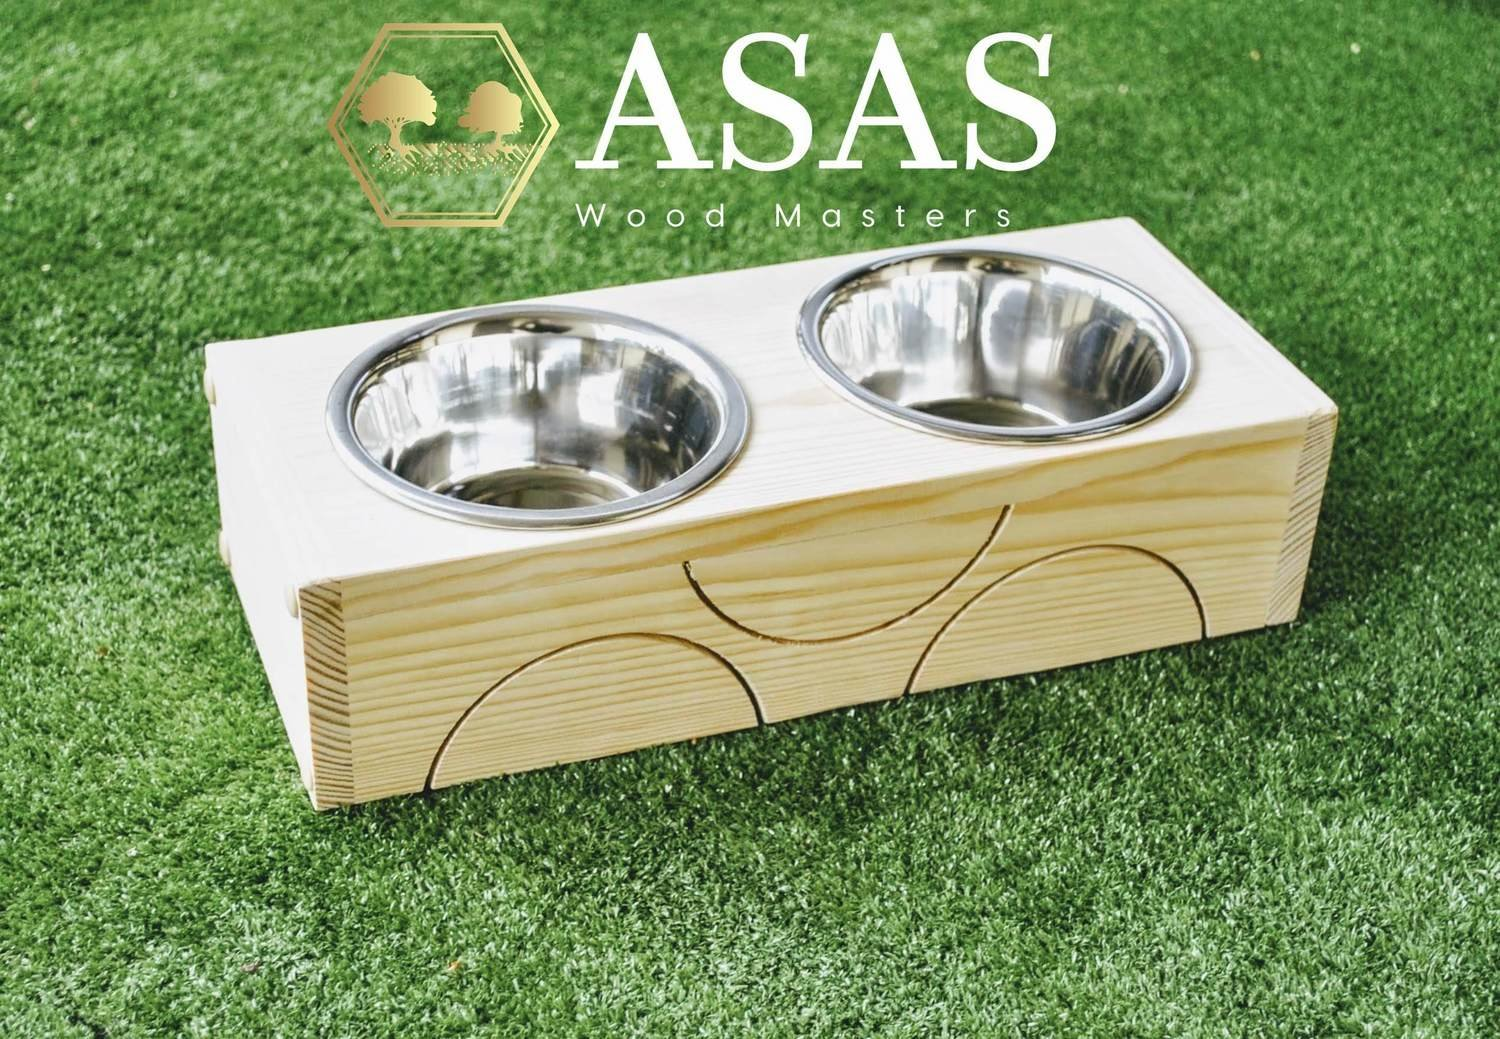 Chinchilla, Guinea Pig, Rabbit Food and Drink bowls stand